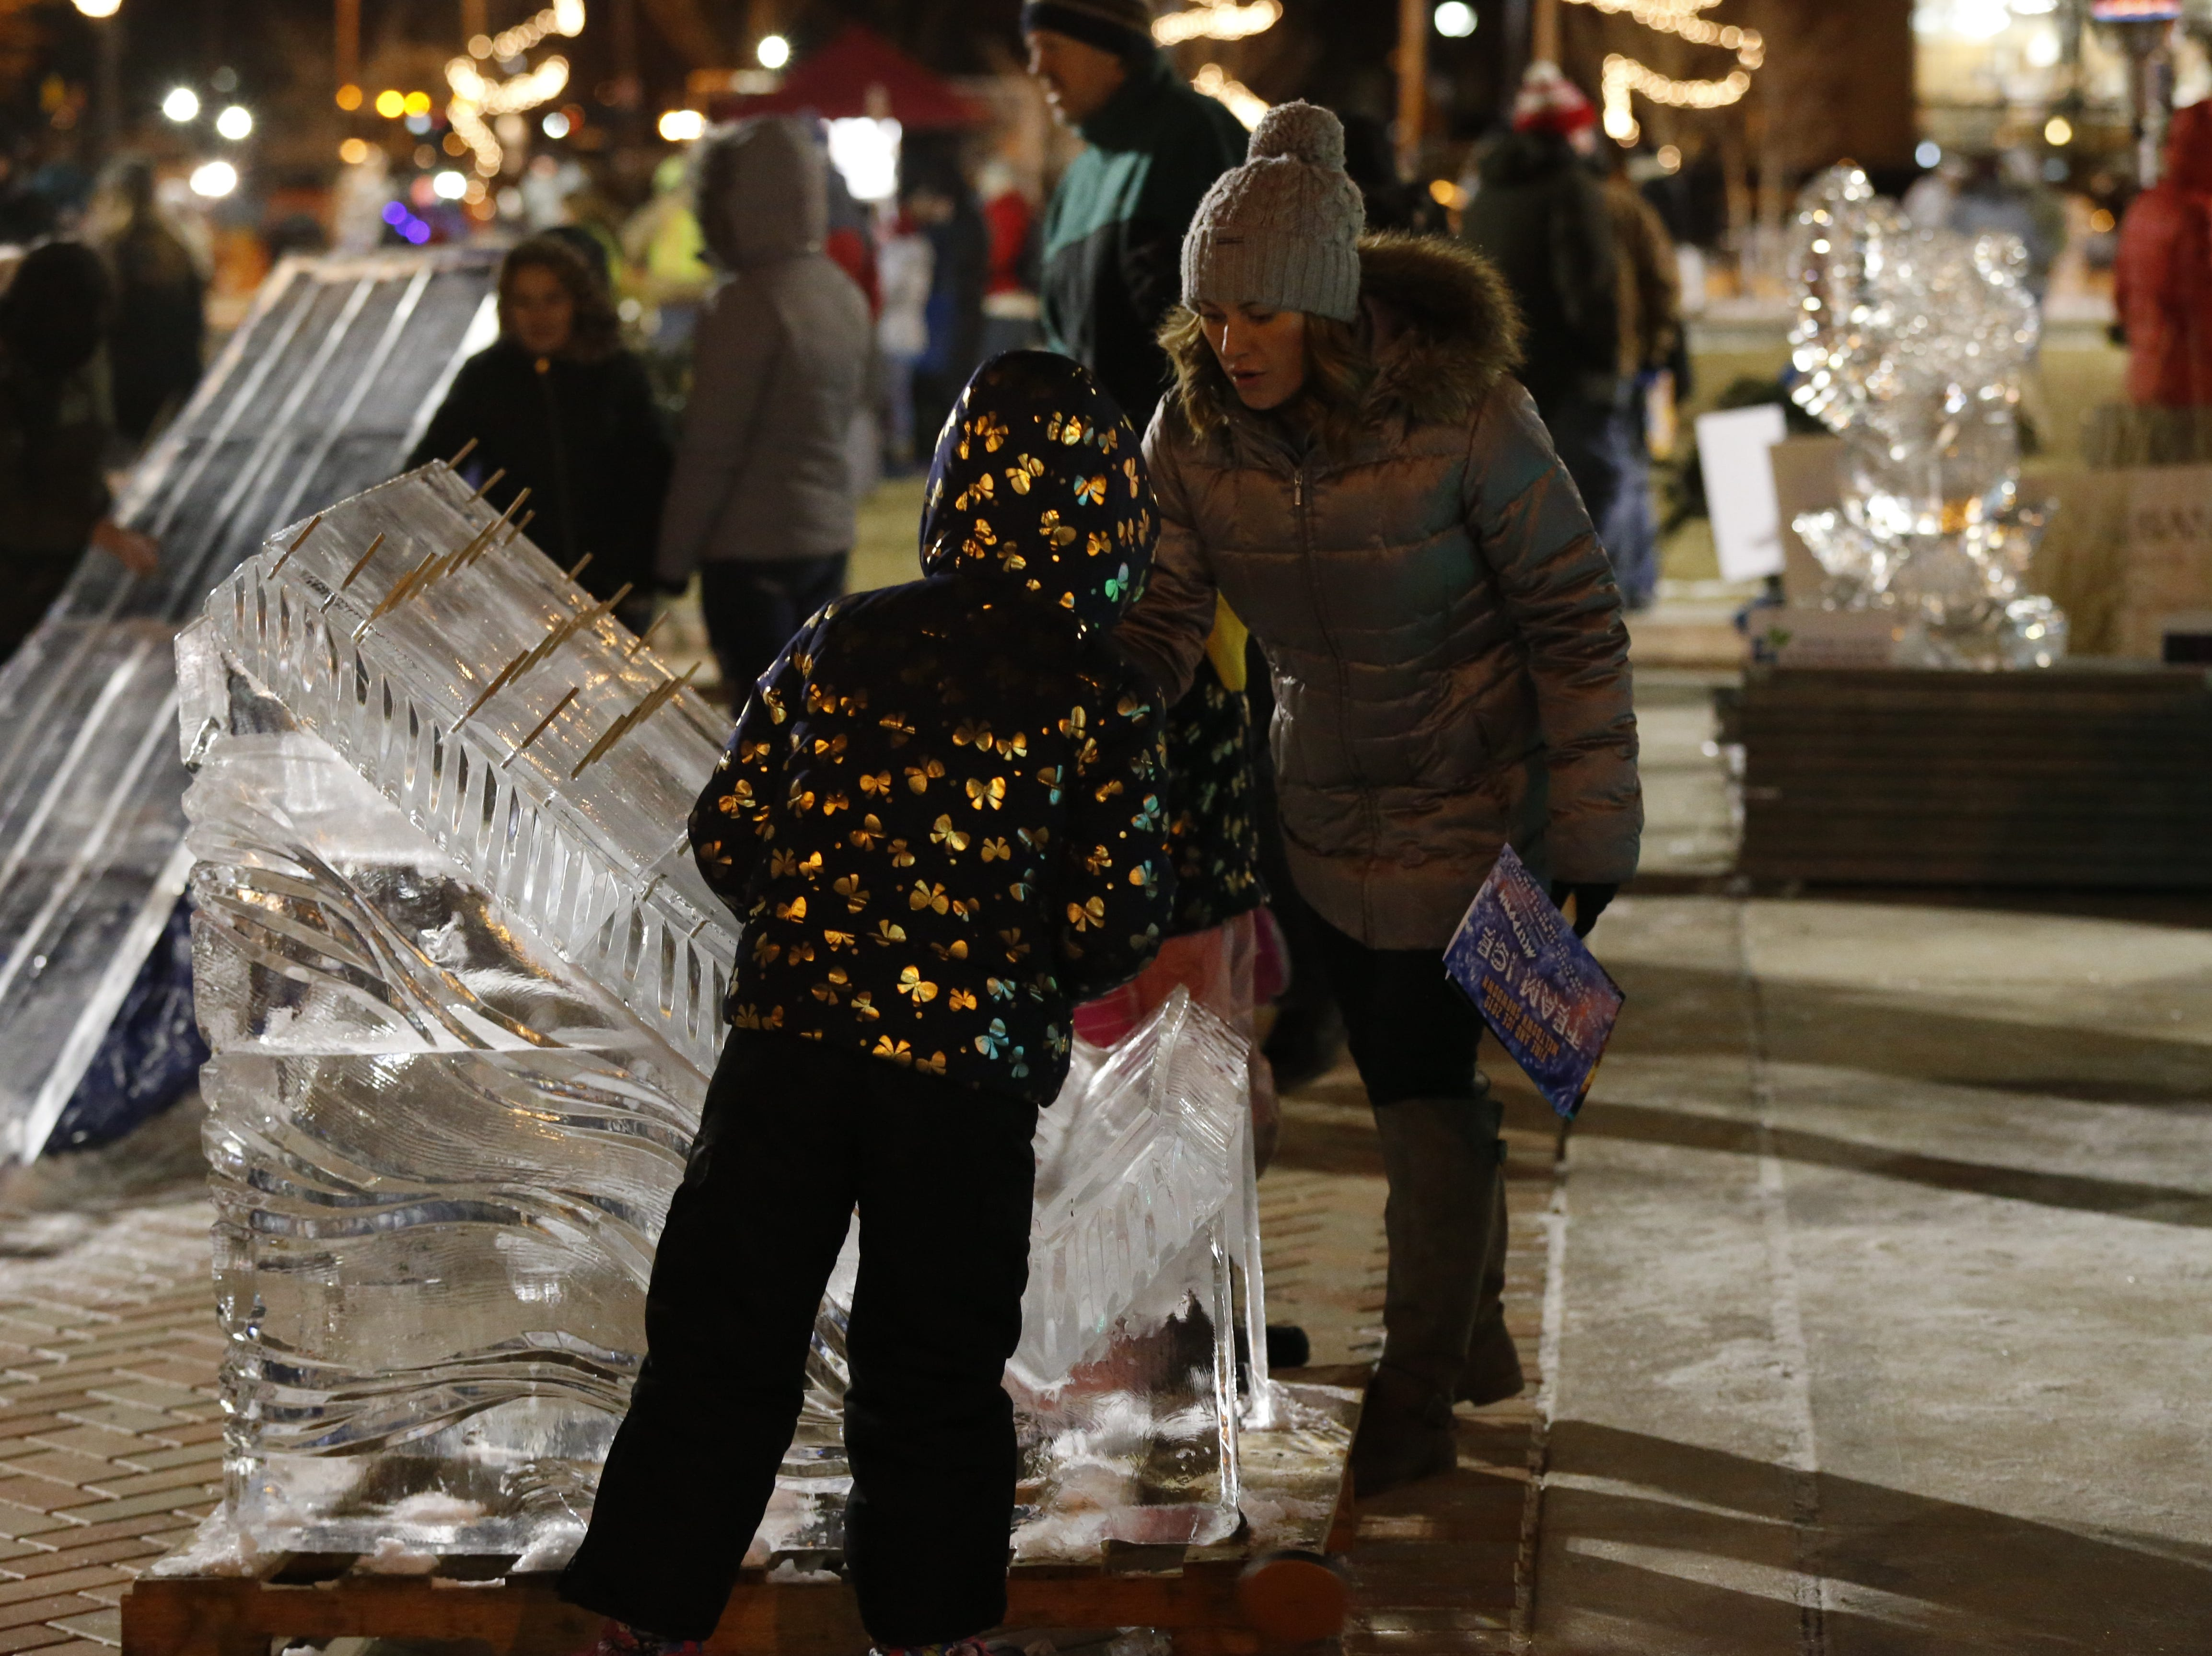 Games such as Plinko made of ice are part of the Meltdown Winter Ice Festival's Interactive Play Zone at Jack Elstro Plaza.